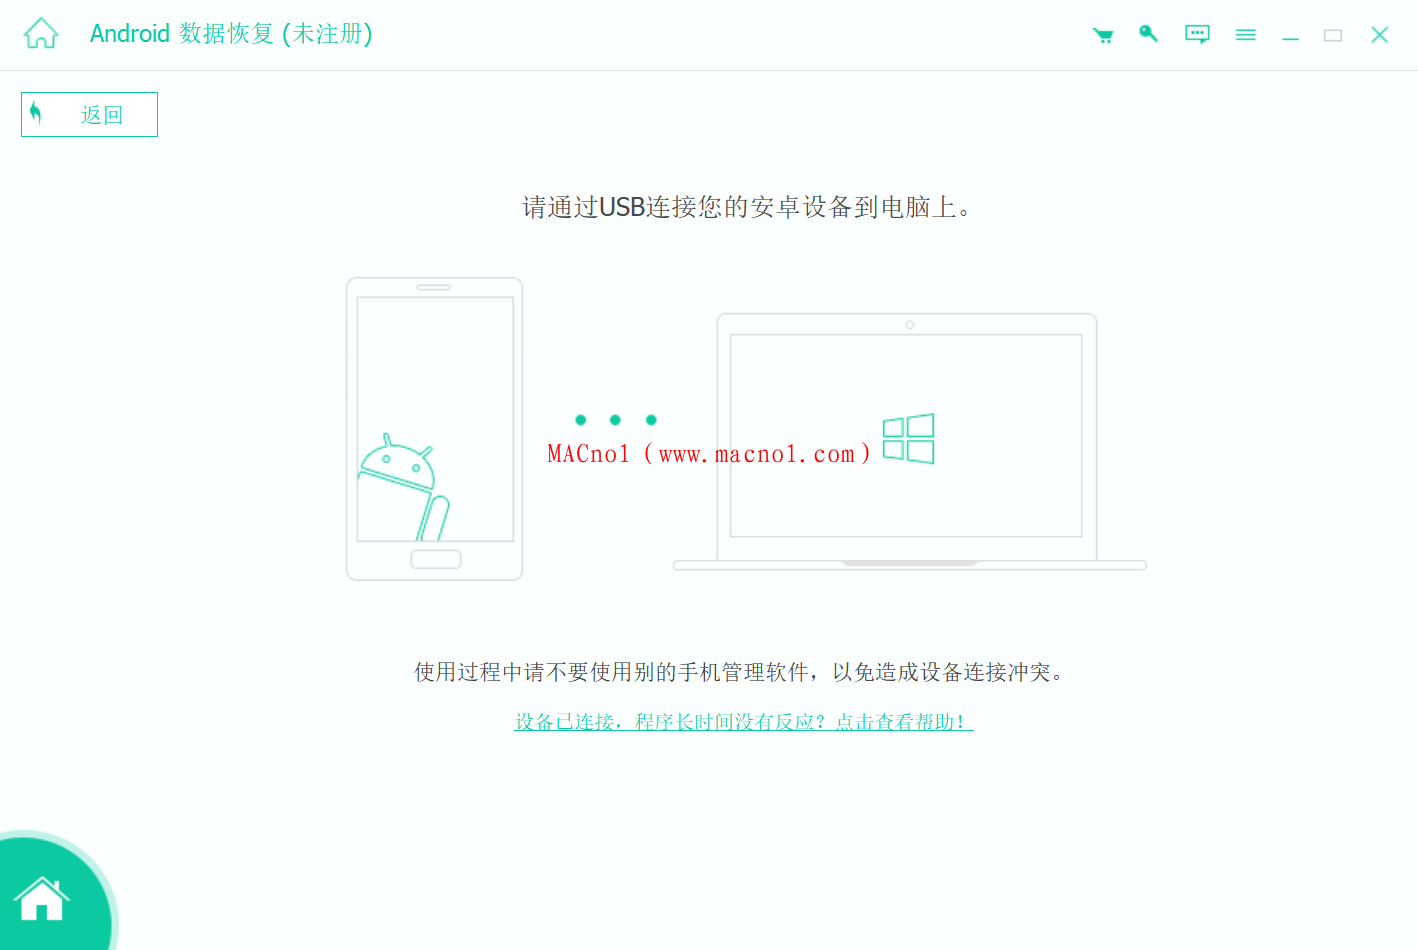 ApeakSoft Android Toolkit Recovery 破解版.png